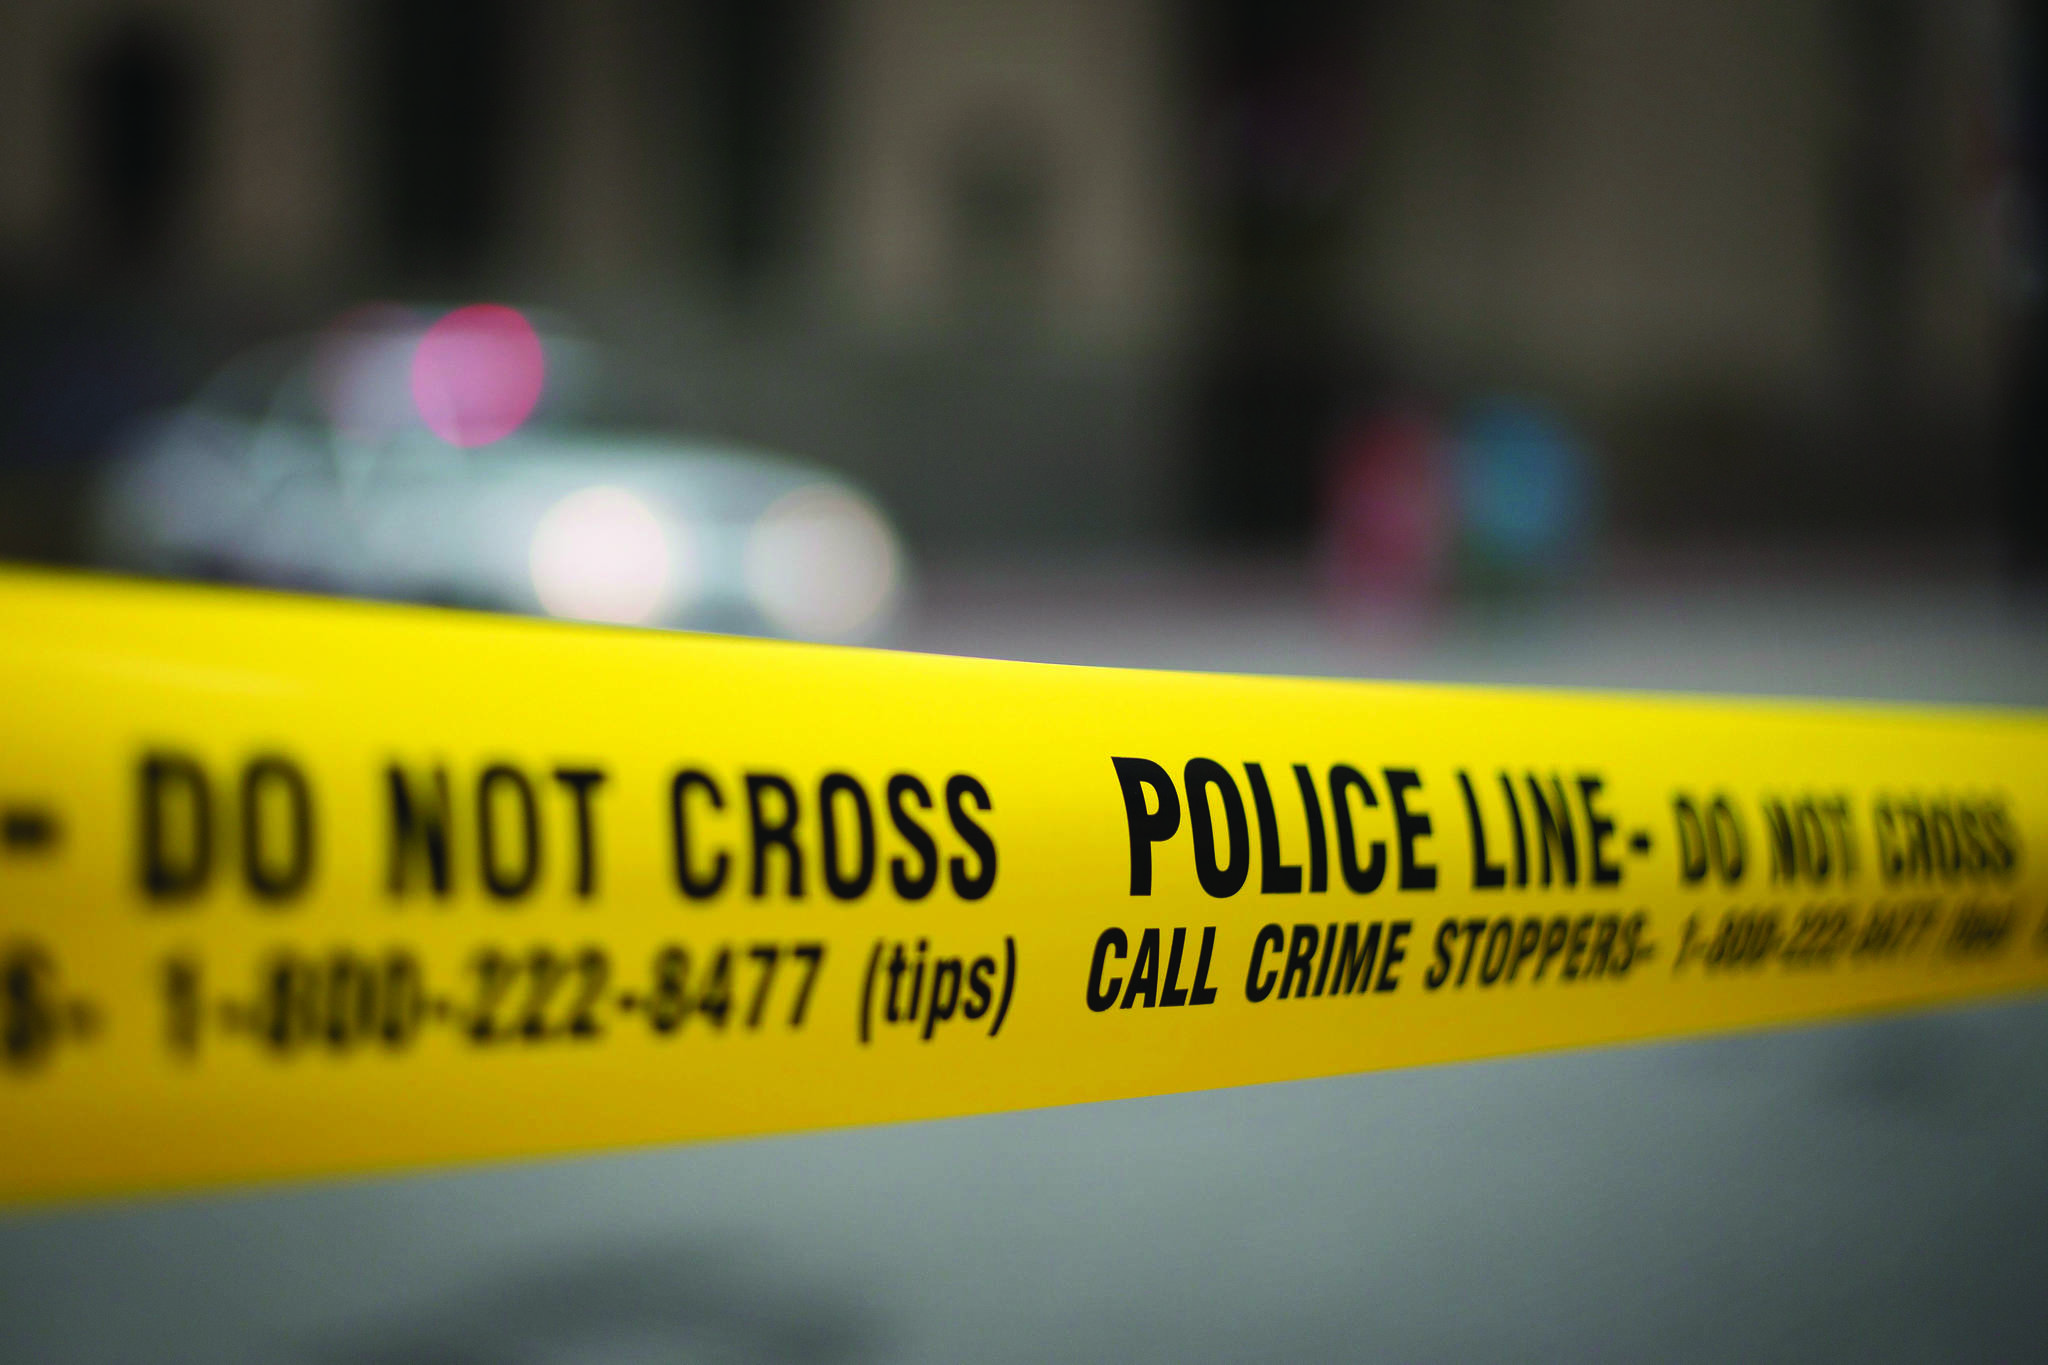 Surrey RCMP blocked off an area around 192nd Street and 68th Avenue to investigate a pedestrian/vehicle collision Nov. 11, 2020. (THE CANADIAN PRESS/Graeme Roy)